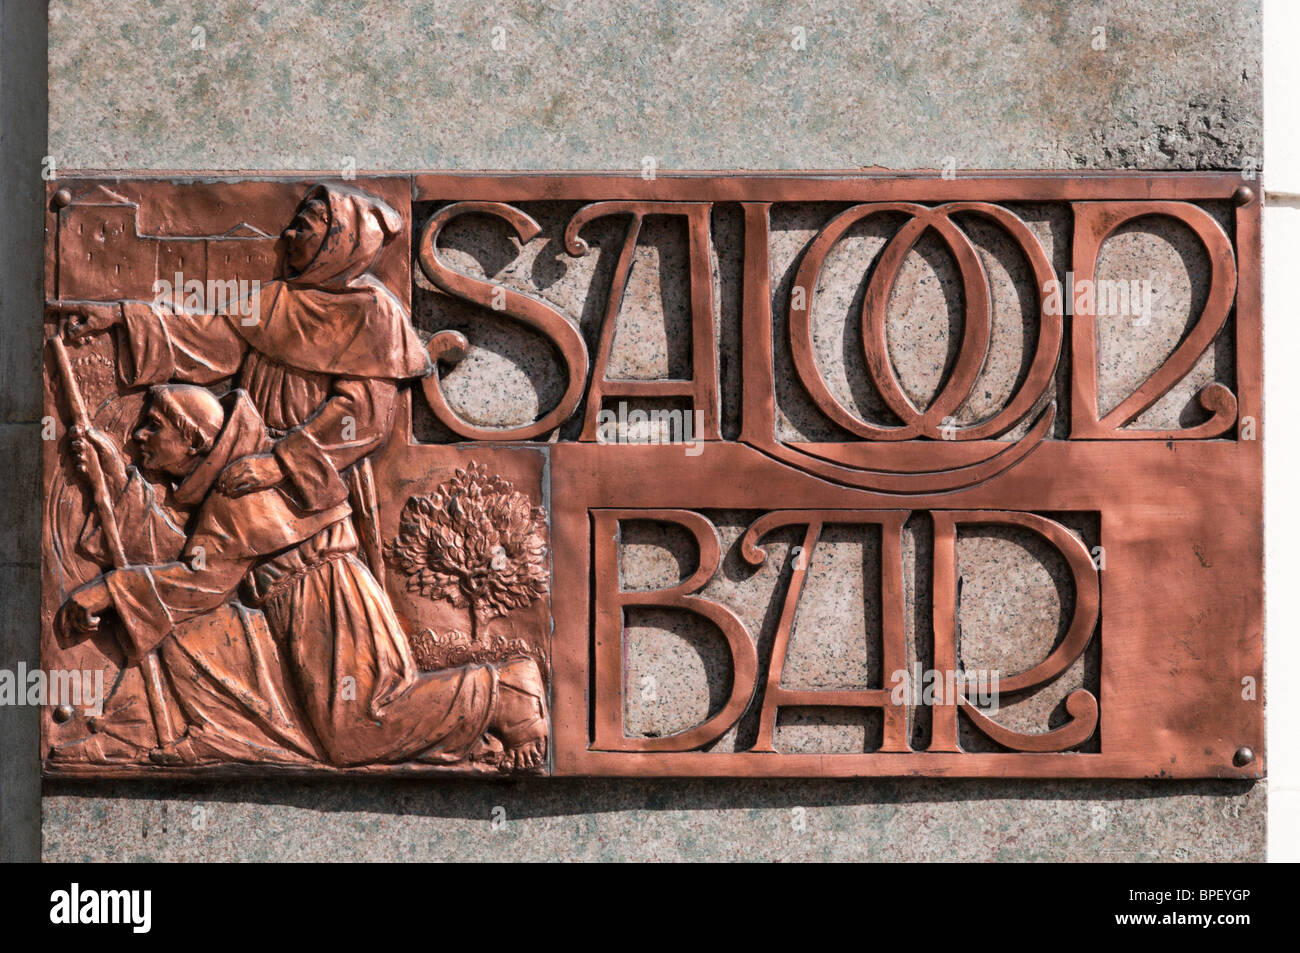 Sign for the Saloon Bar on The Black Friar pub in Blackfriars, London Stock Photo